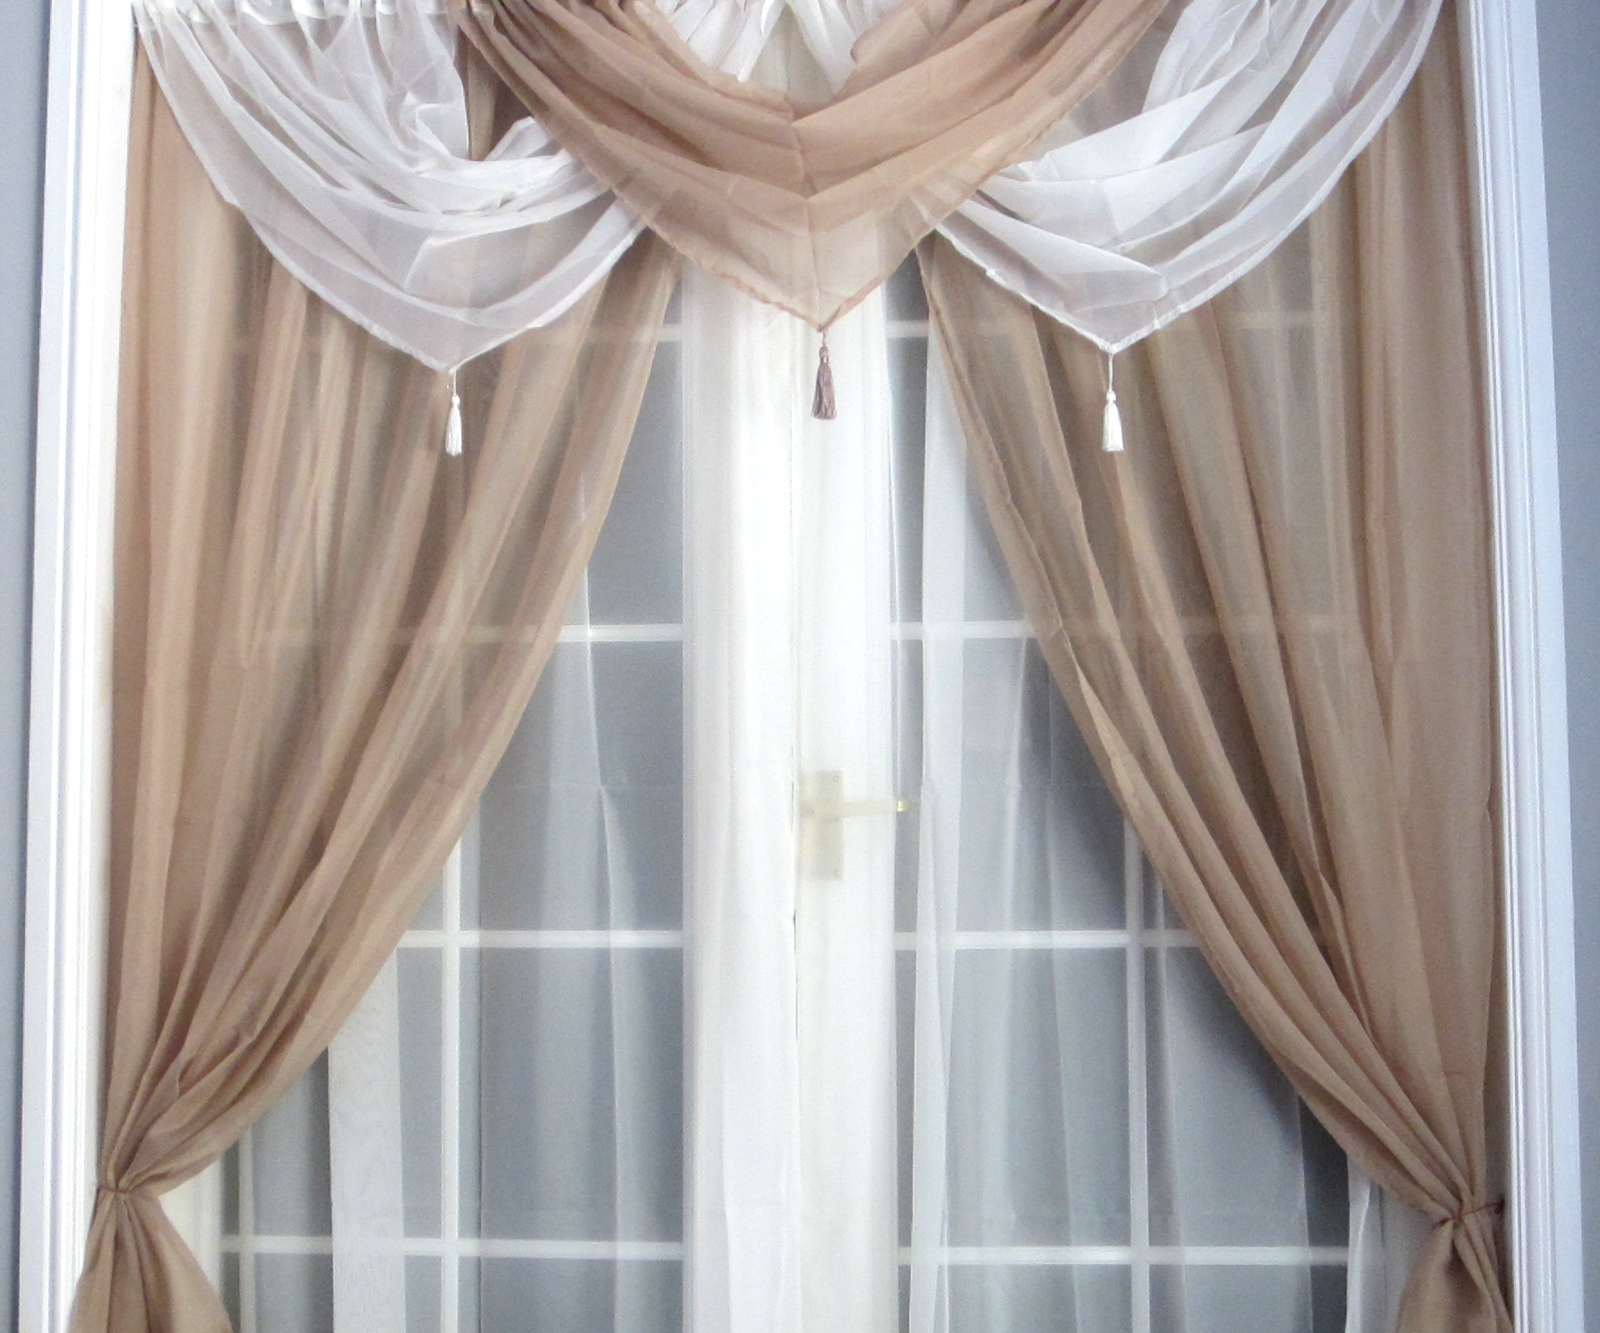 Draping Curtains Details About Cream White Voile Swags And Tails Set Curtains Slot Top Window Door Drape Net